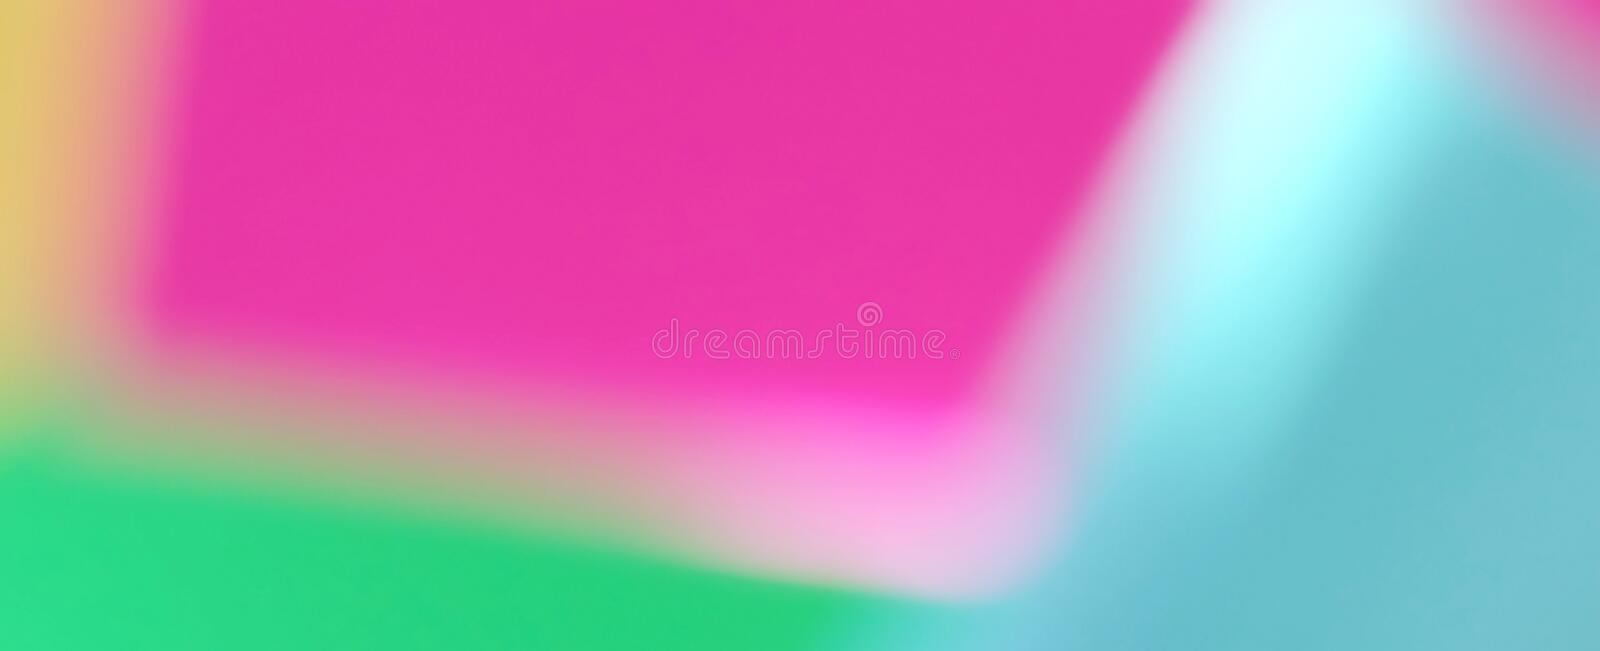 Abstract blured defocused effect geometric paper background. Neon trend fashion colors royalty free stock images